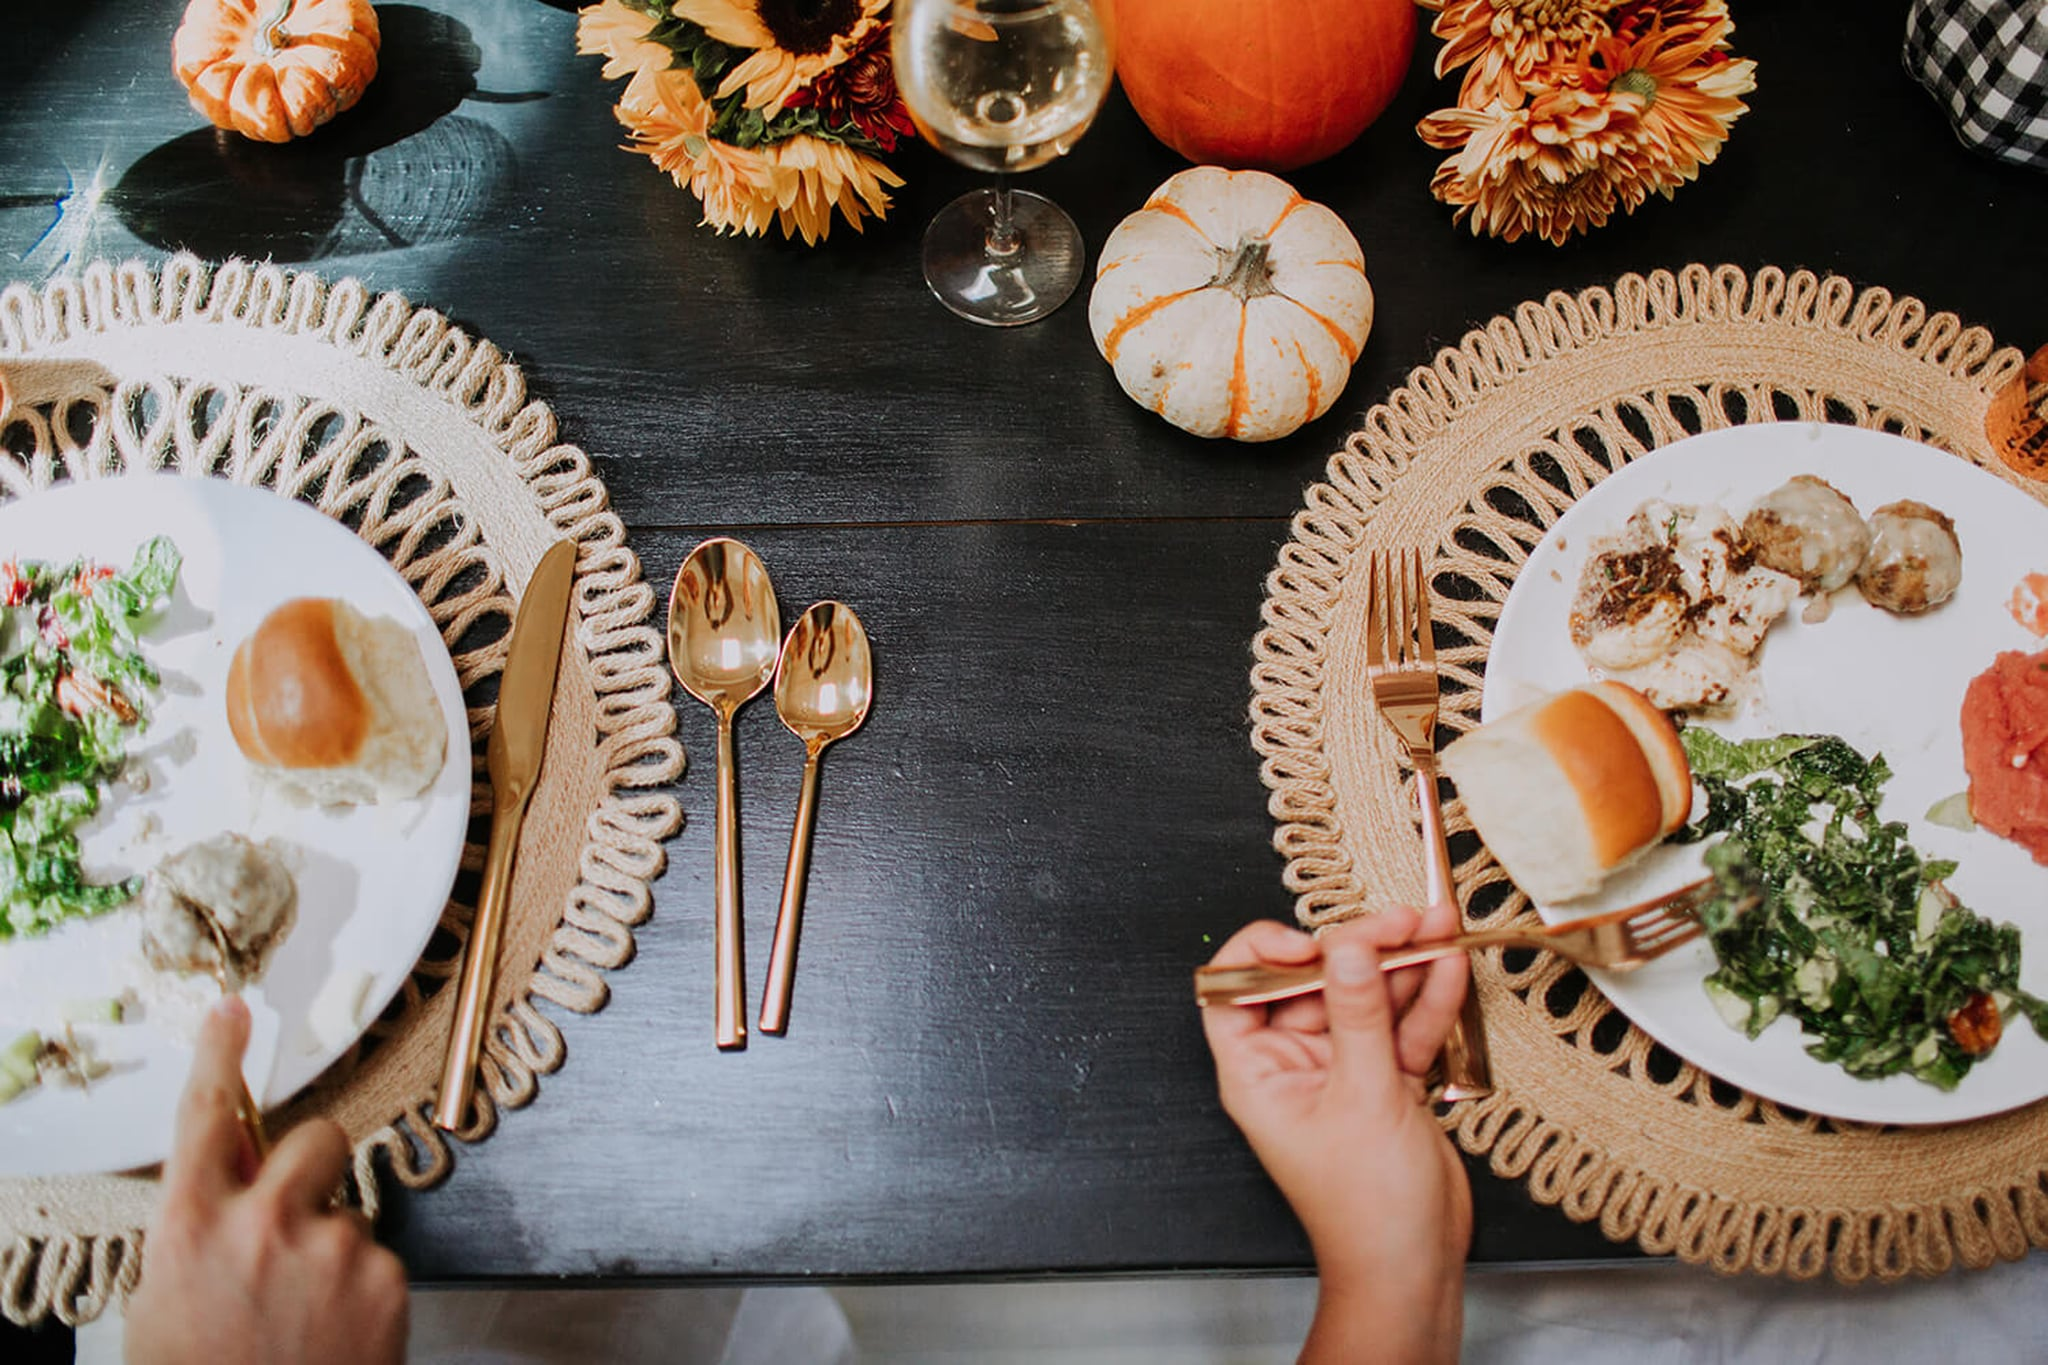 How Many Calories Are in a Typical Thanksgiving Dinner? We Investigate